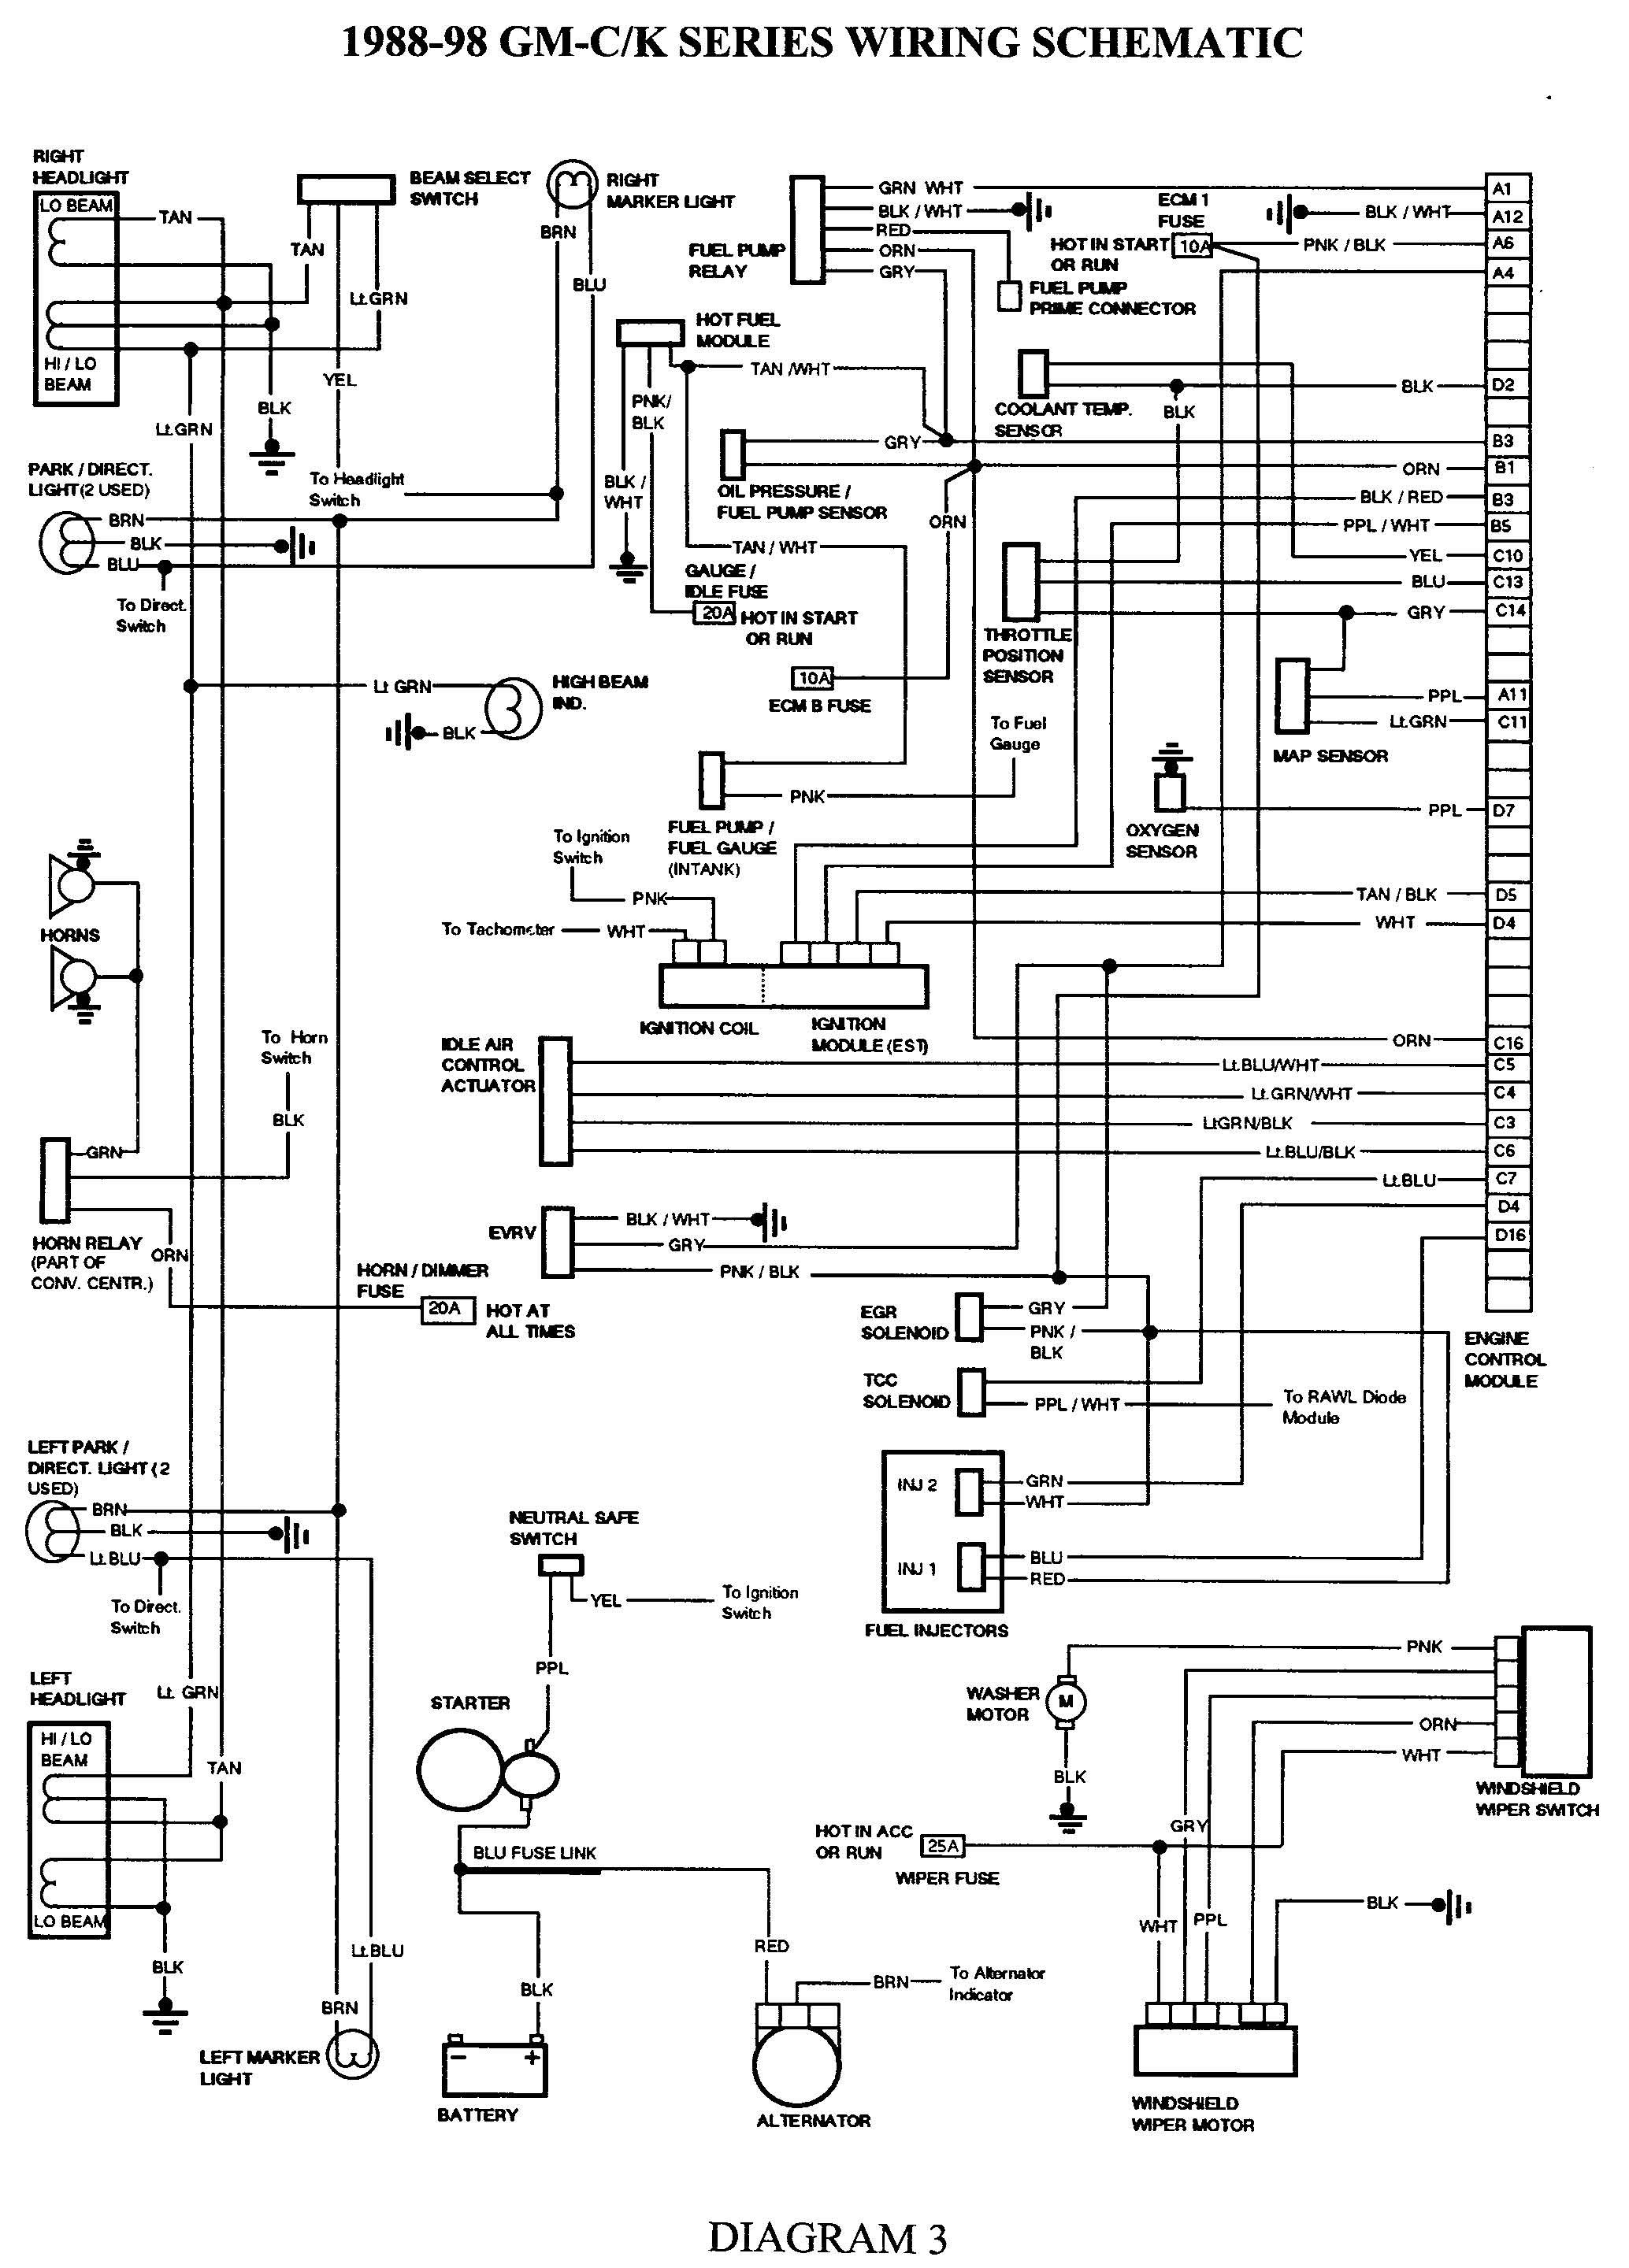 gmc c6500 wiring schematics wiring library diagram a2 GMC C6500 Wiring-Diagram gmc truck wiring diagrams on gm wiring harness diagram 88 98 kc 2002 gmc c6500 wiring diagram gmc c6500 wiring schematics